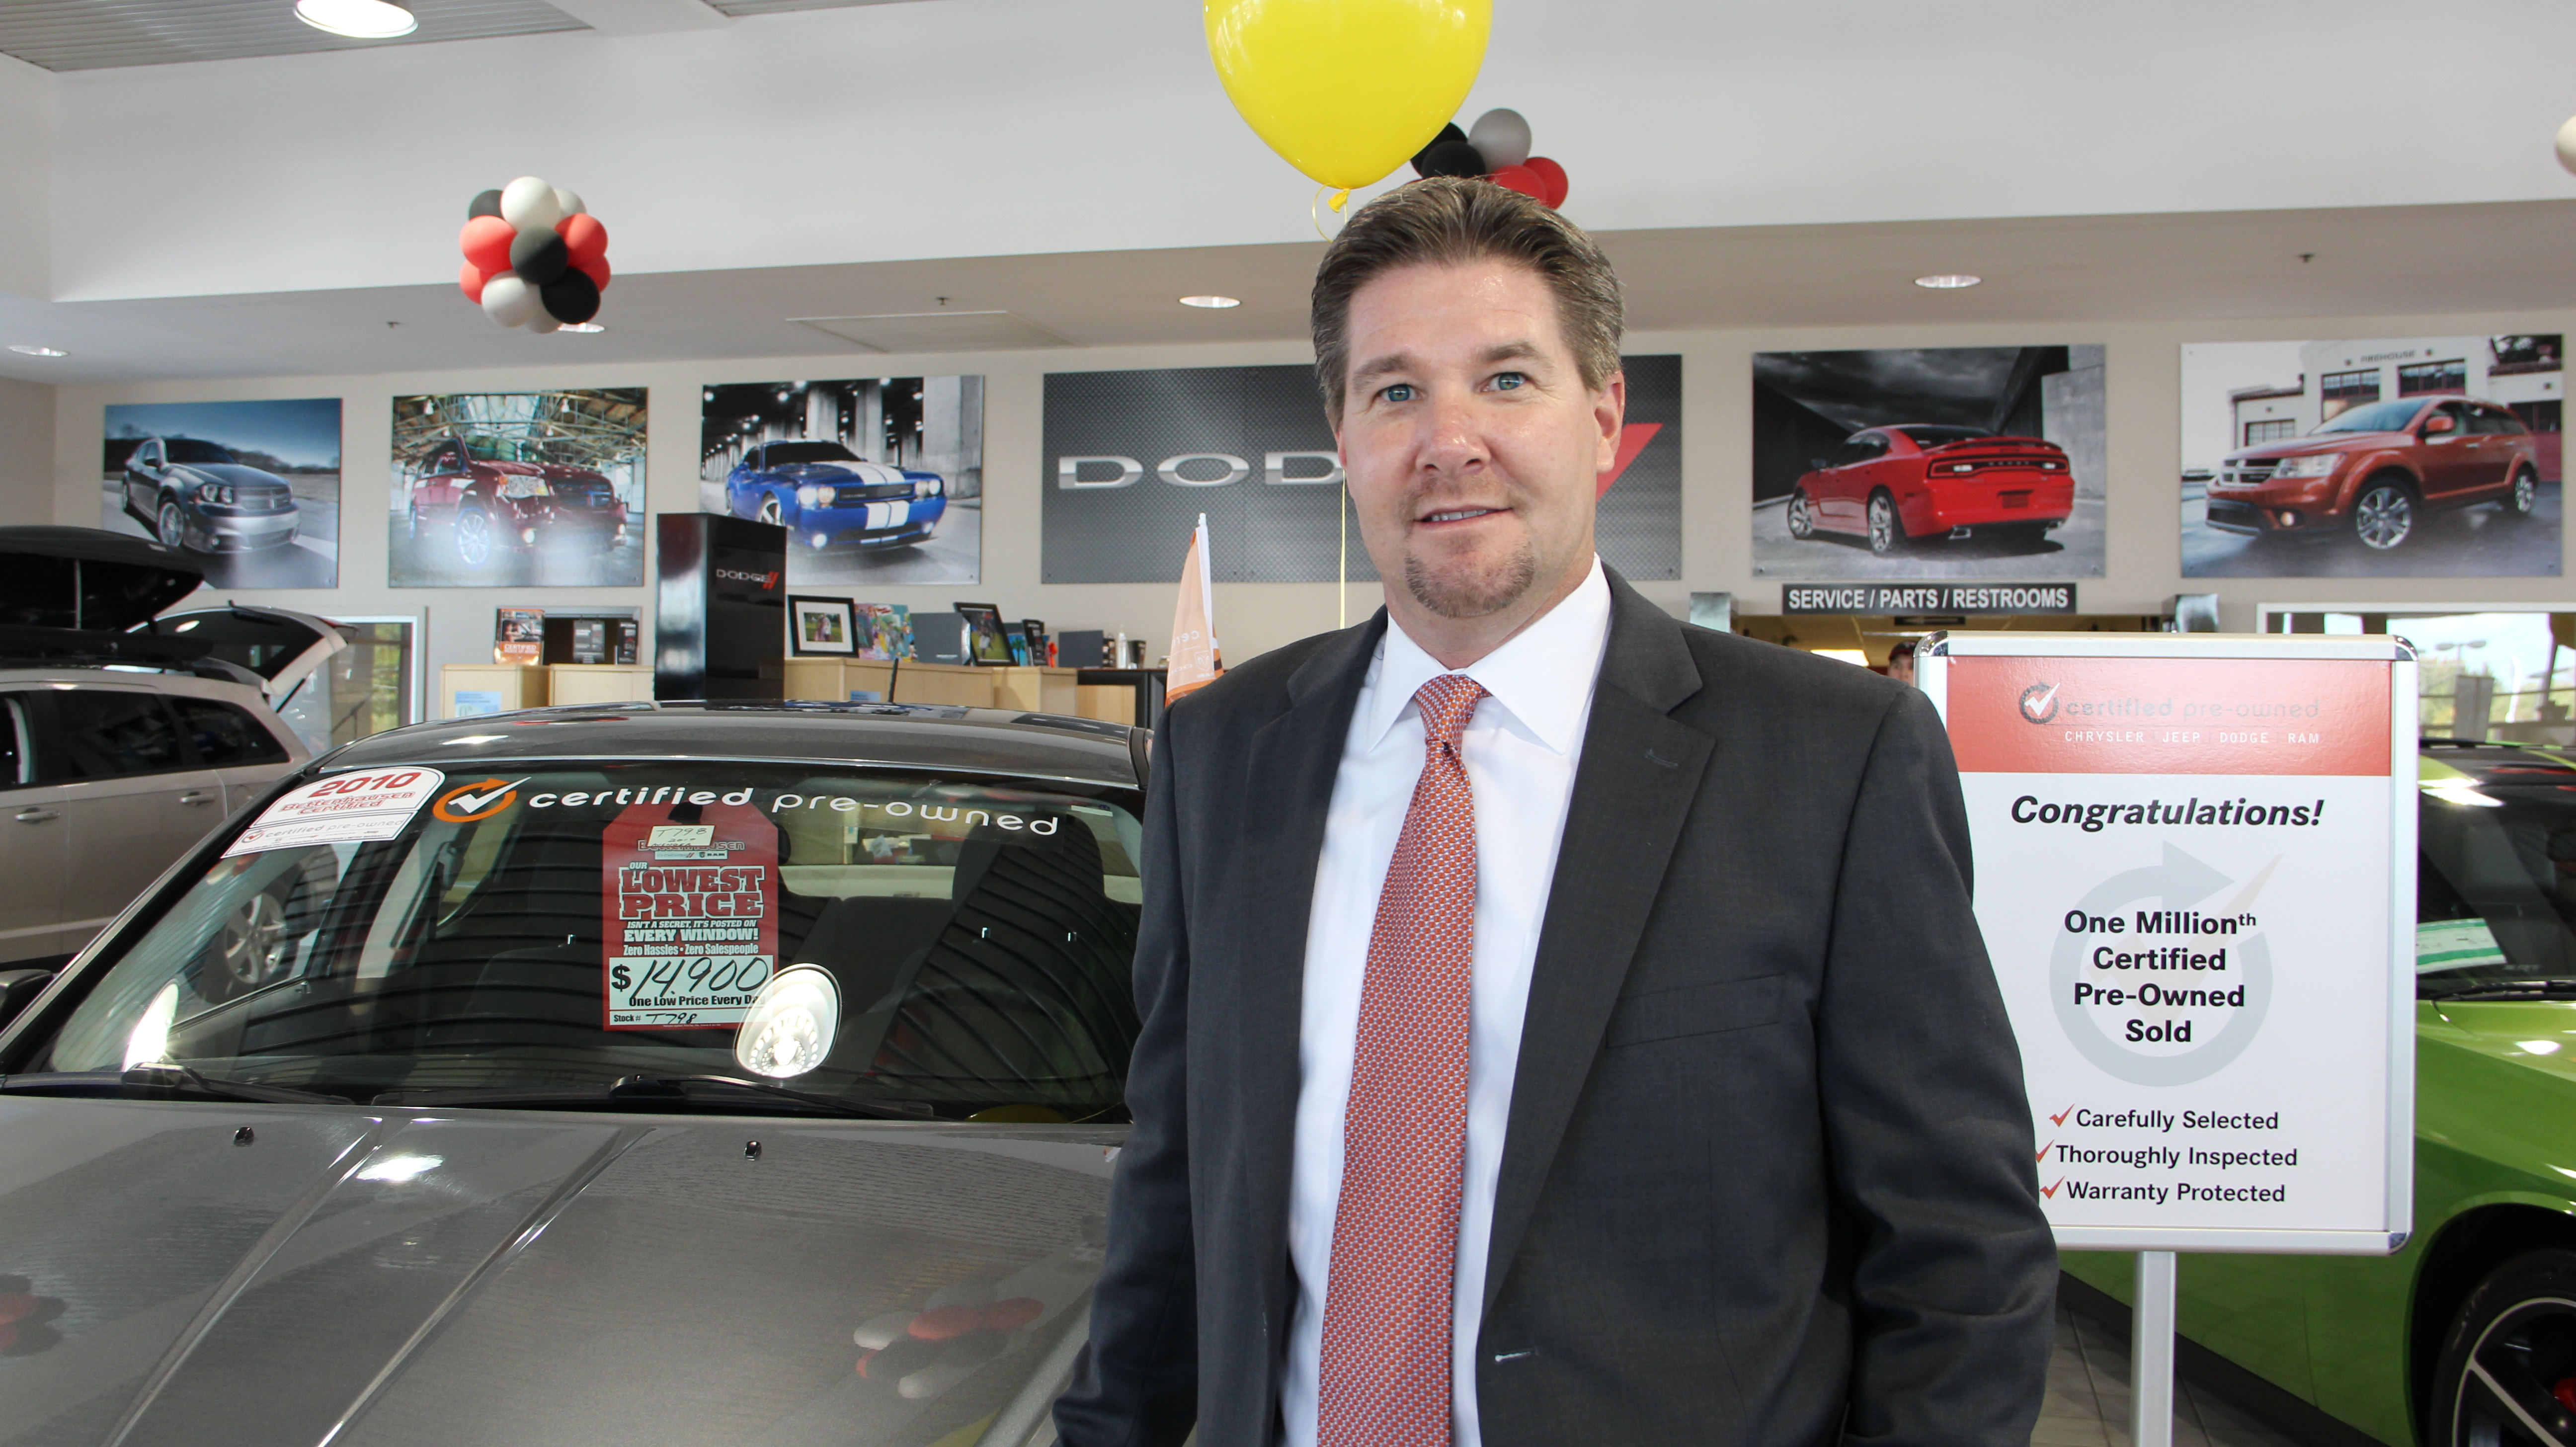 1 millionth chrysler group certified pre owned vehicle by dealer mike bettenhausen s bettenhausen motor s in tinley park ill near chicago the one millionth chrysler group certified pre owned vehicle